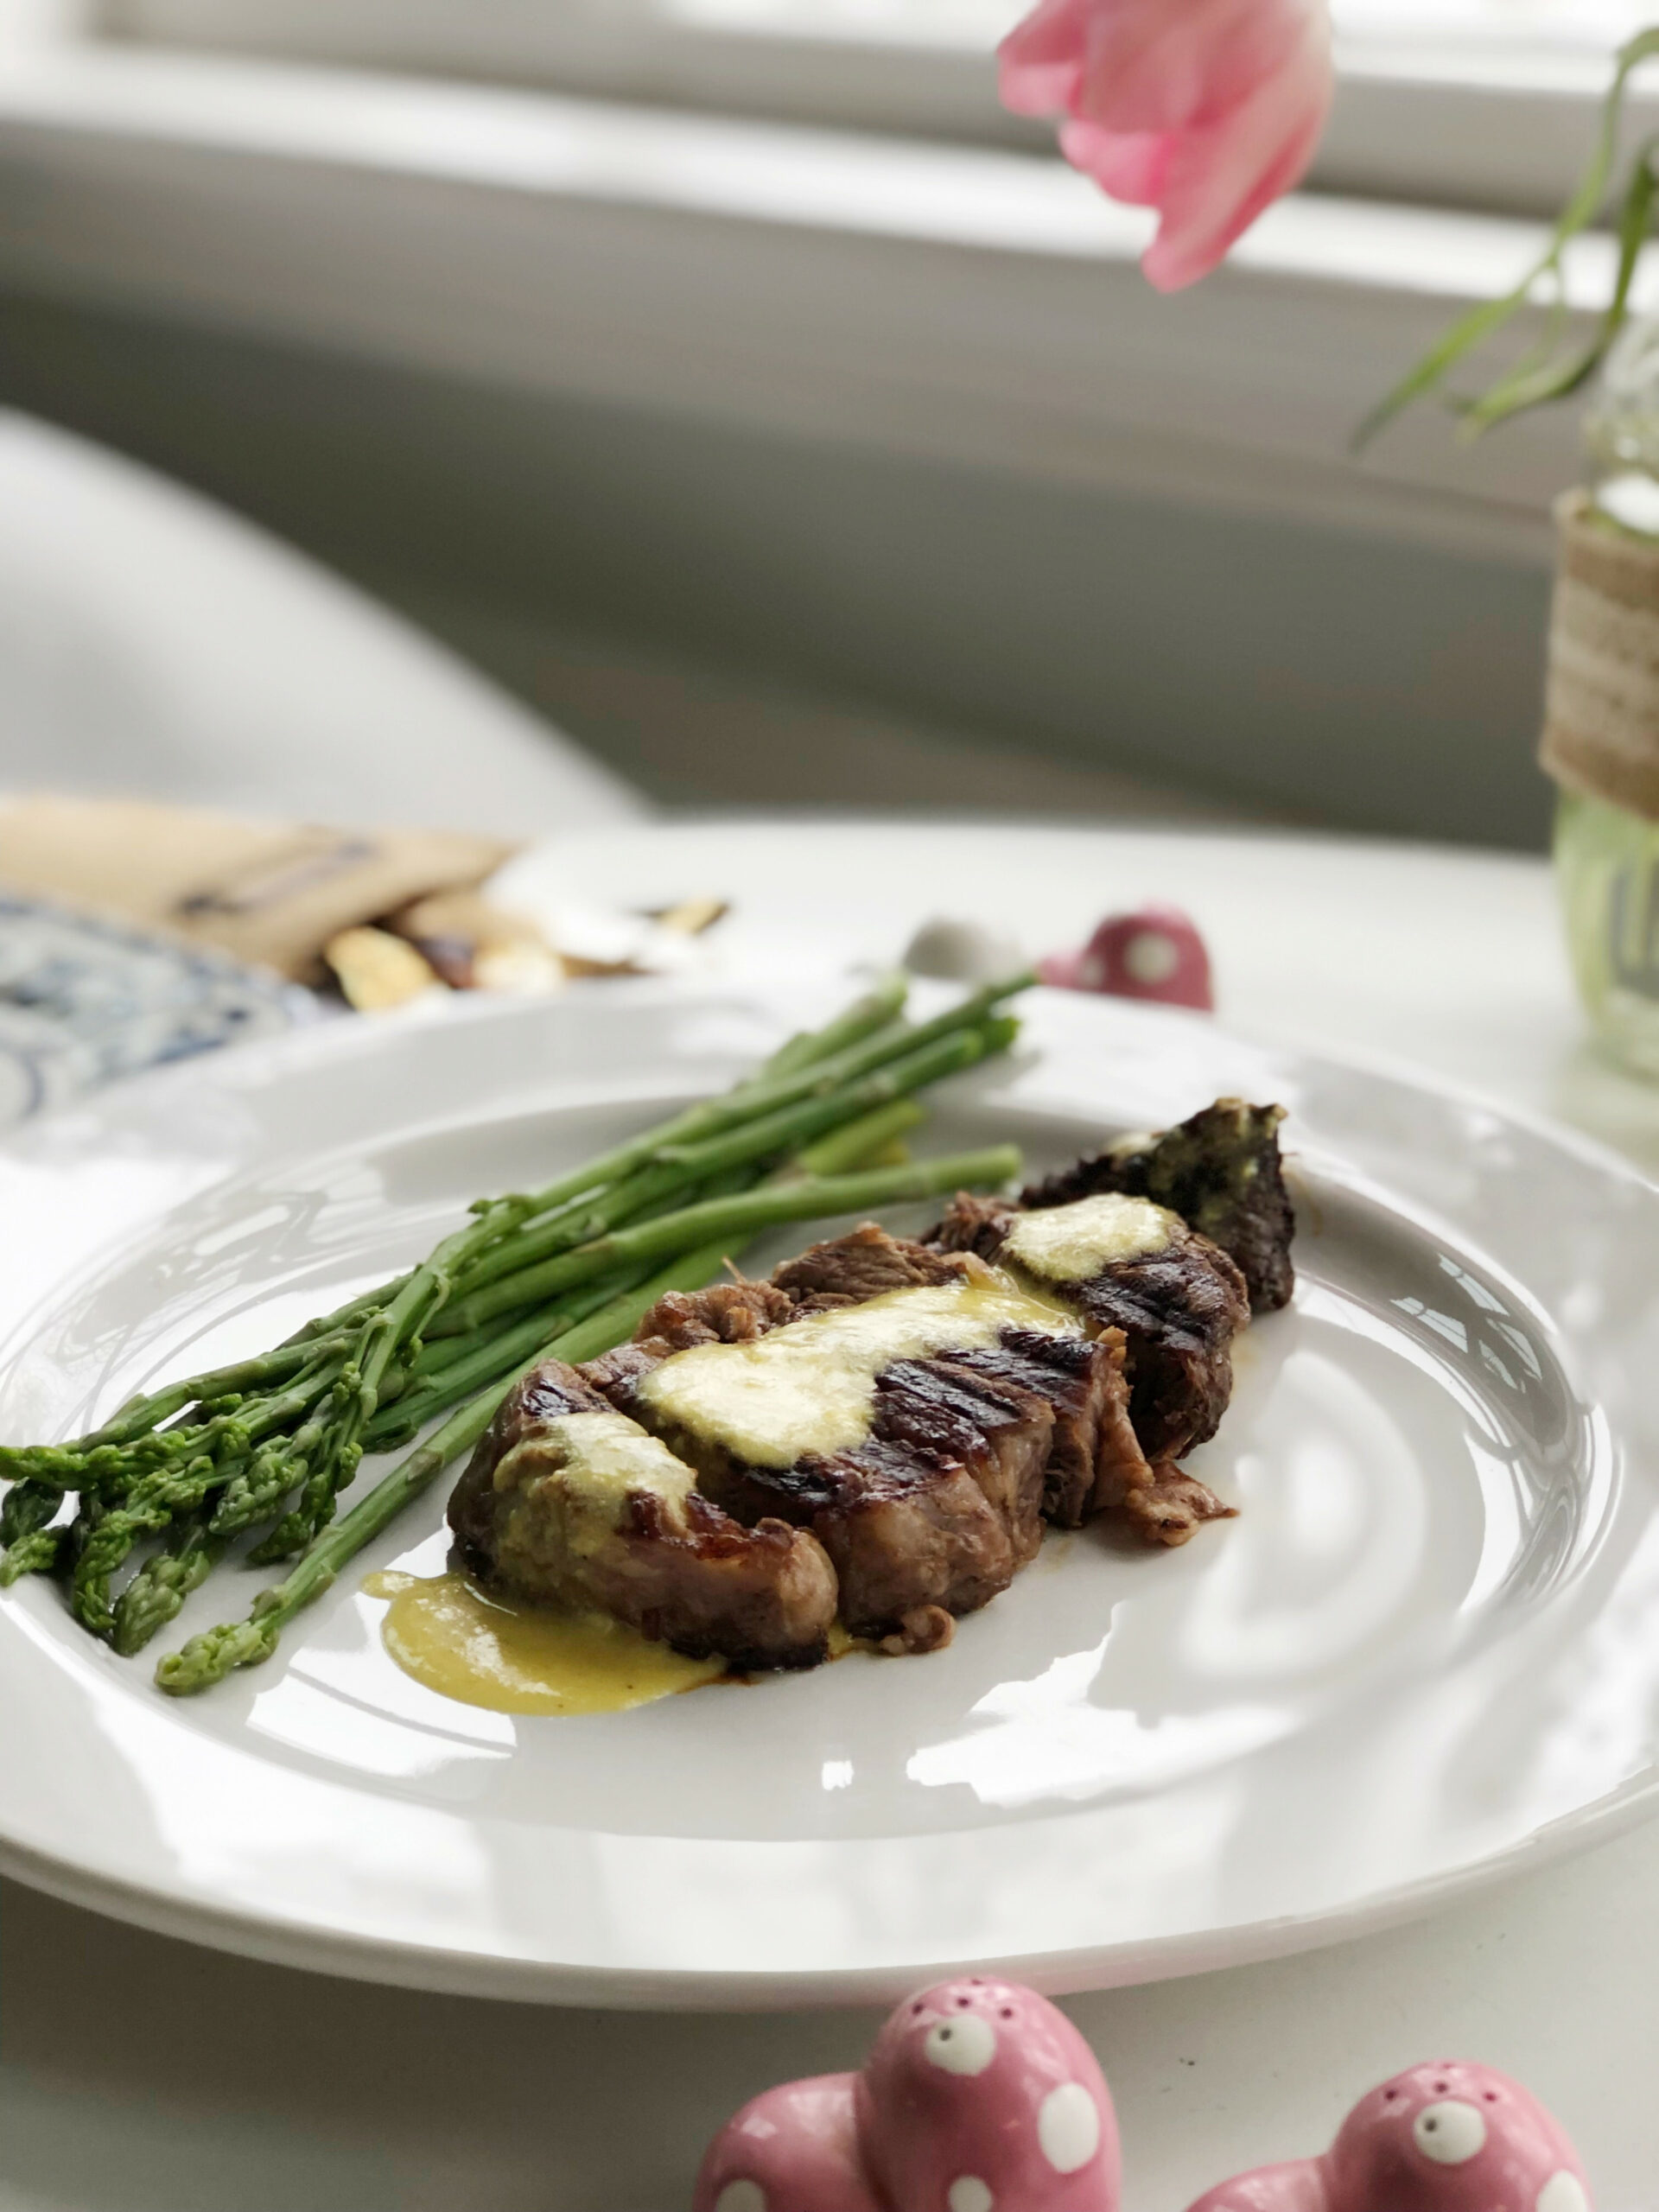 Romantic Dinner for Two-Keto Steak with Bernaise Sauce